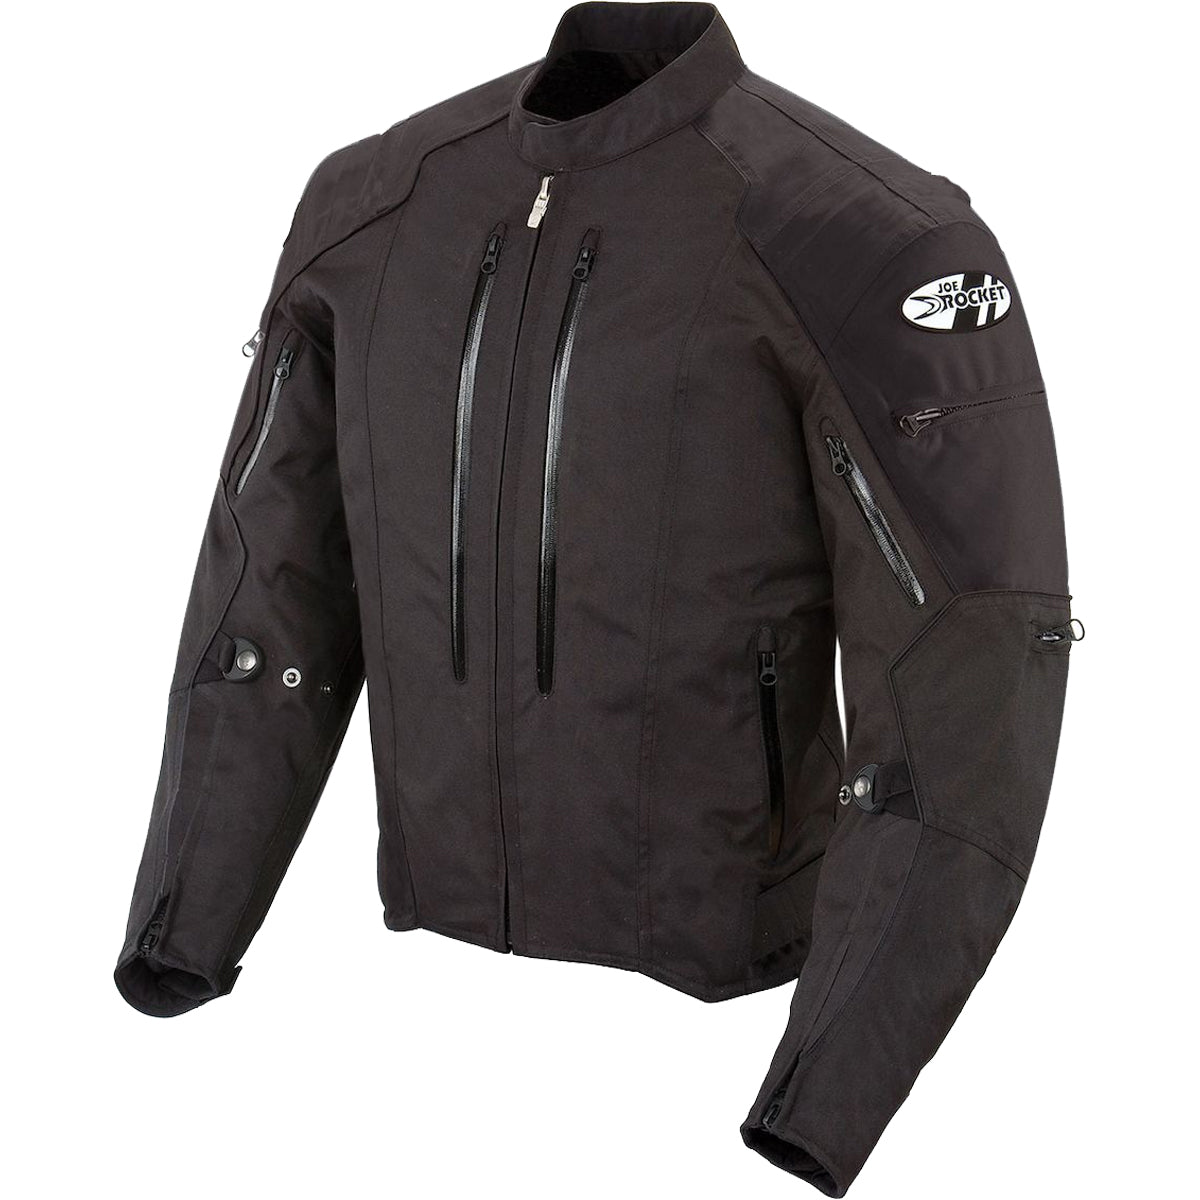 Joe Rocket Atomic 4.0 Men's Street Jackets-1051